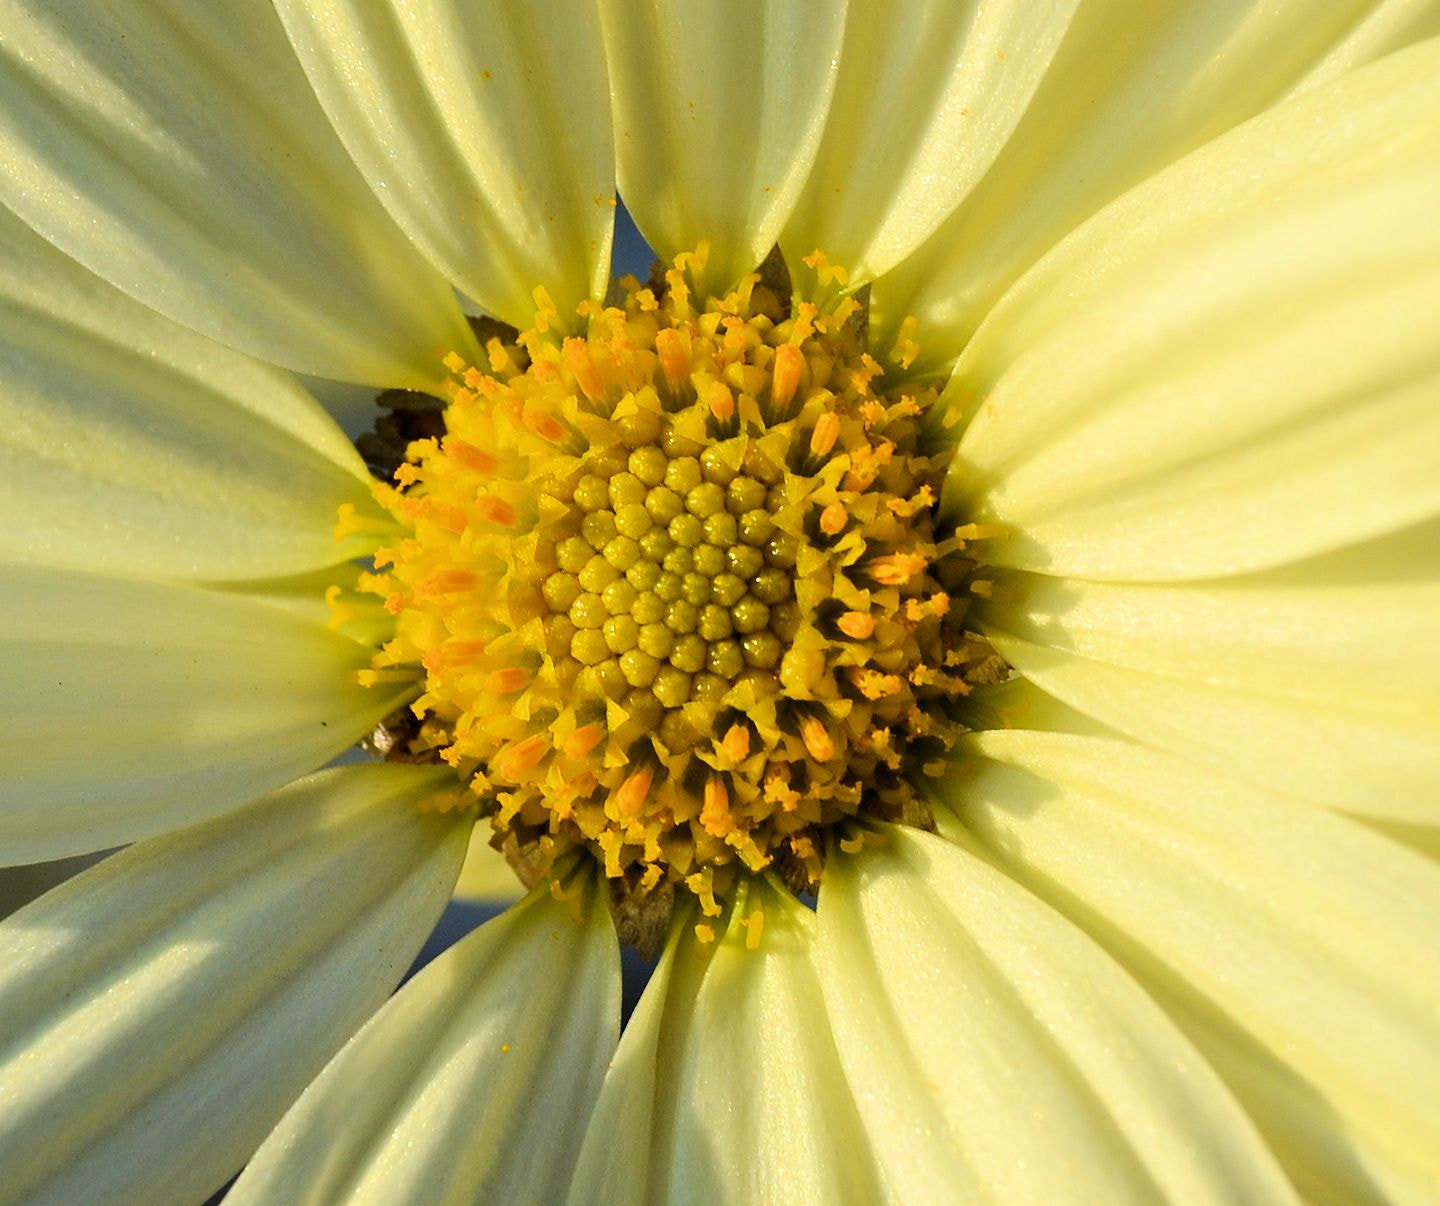 Photograph Marguerite by Heather Aplin on 500px